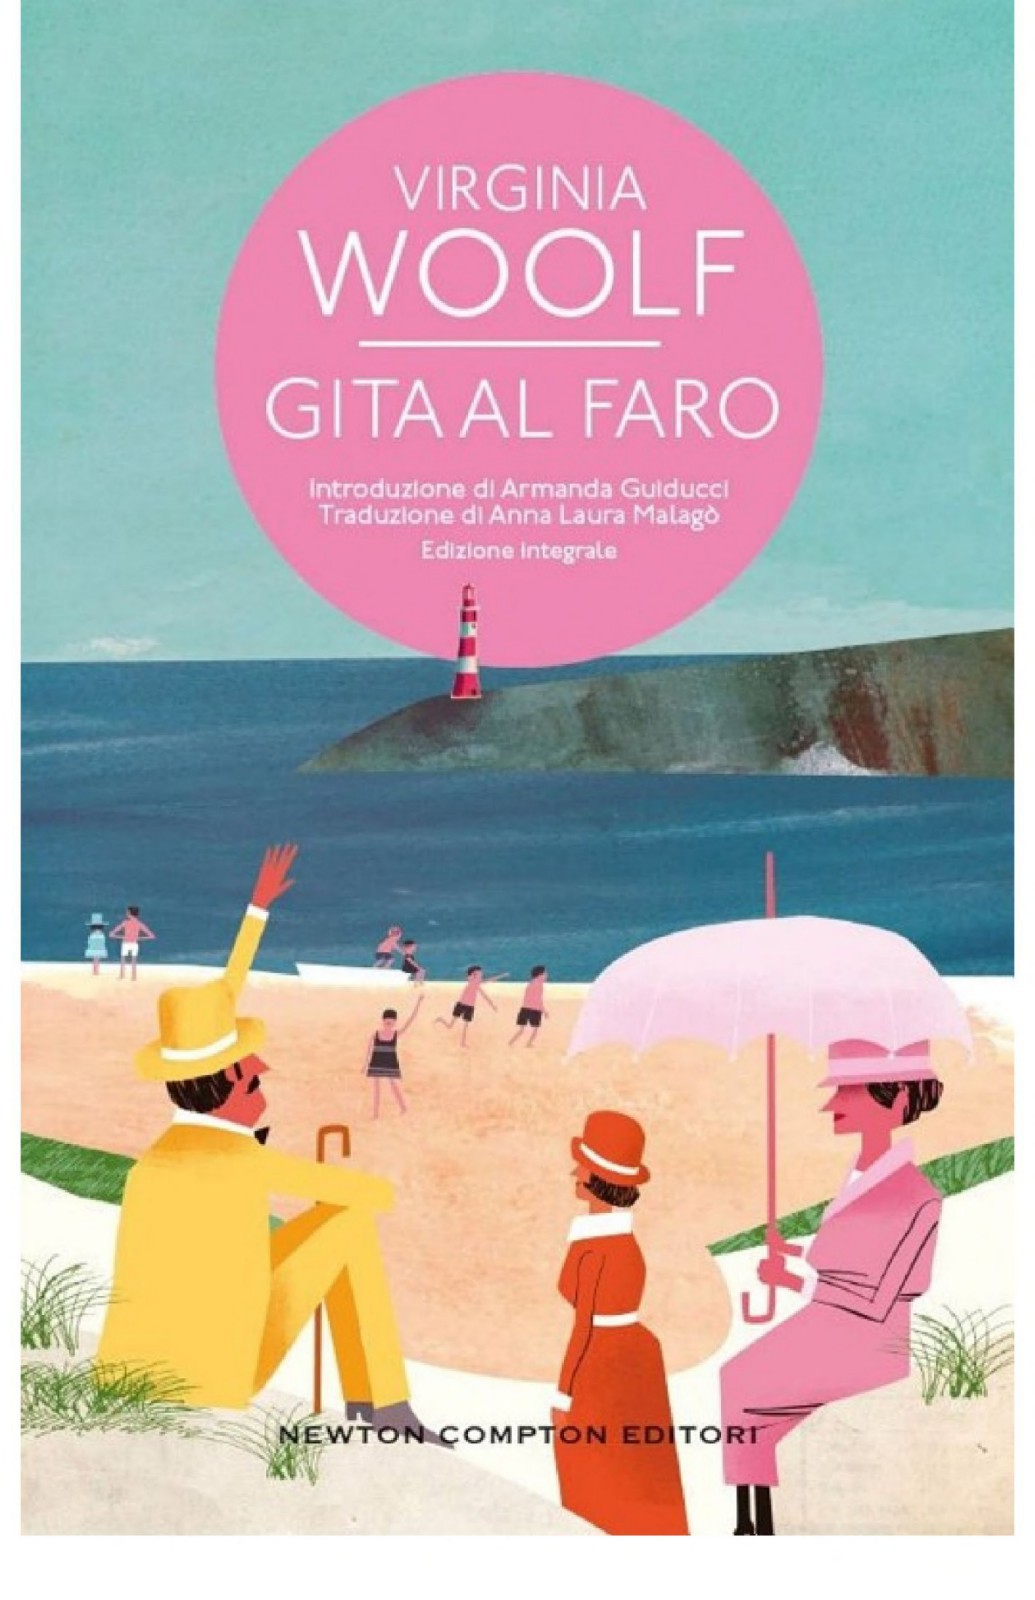 Virginia Woolf - Gita al Faro (2011)